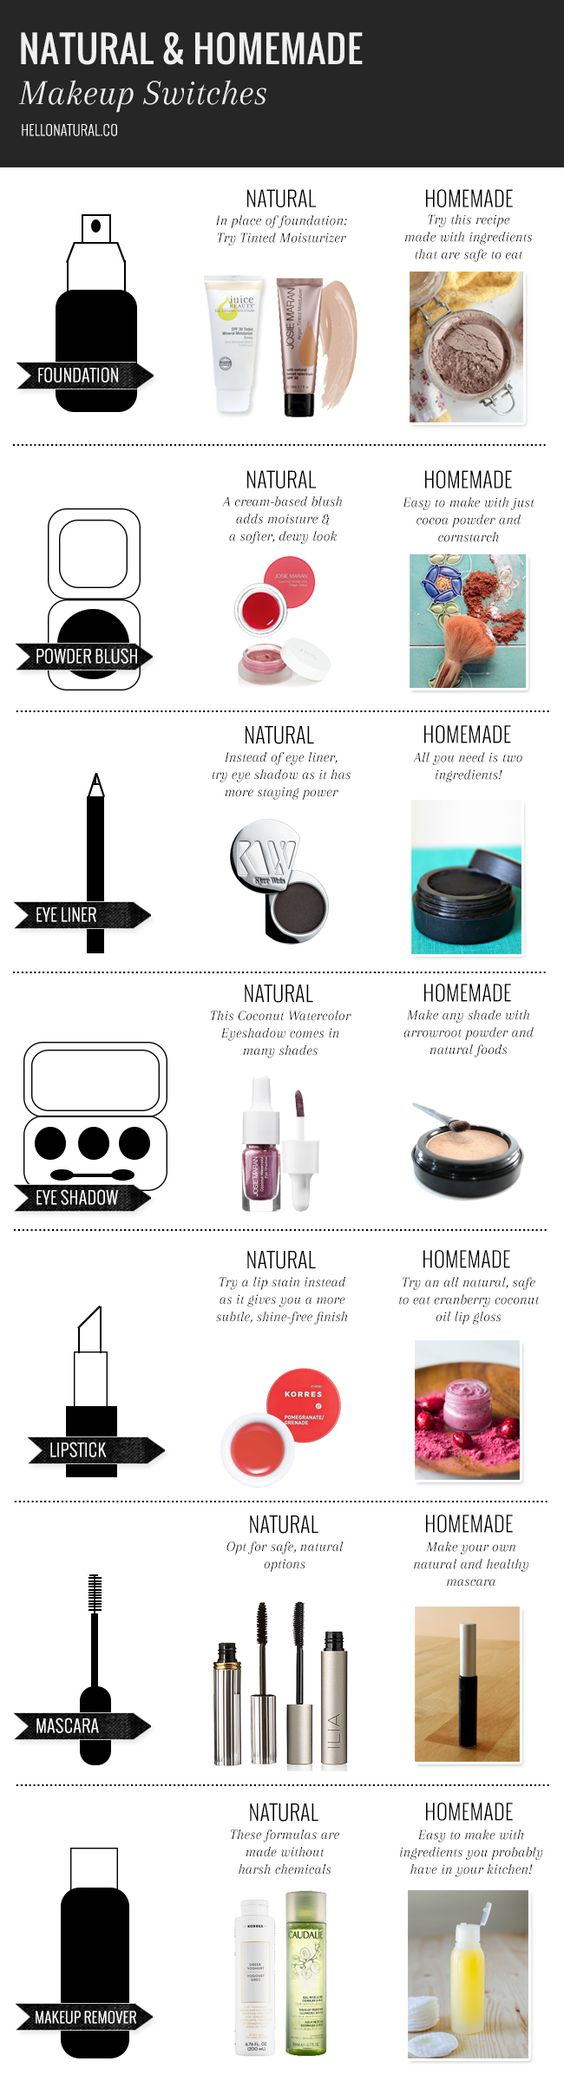 7 Natural   Homemade Makeup Switches | http://hellonatural.co/7-natural-homemade-makeup-switches/: